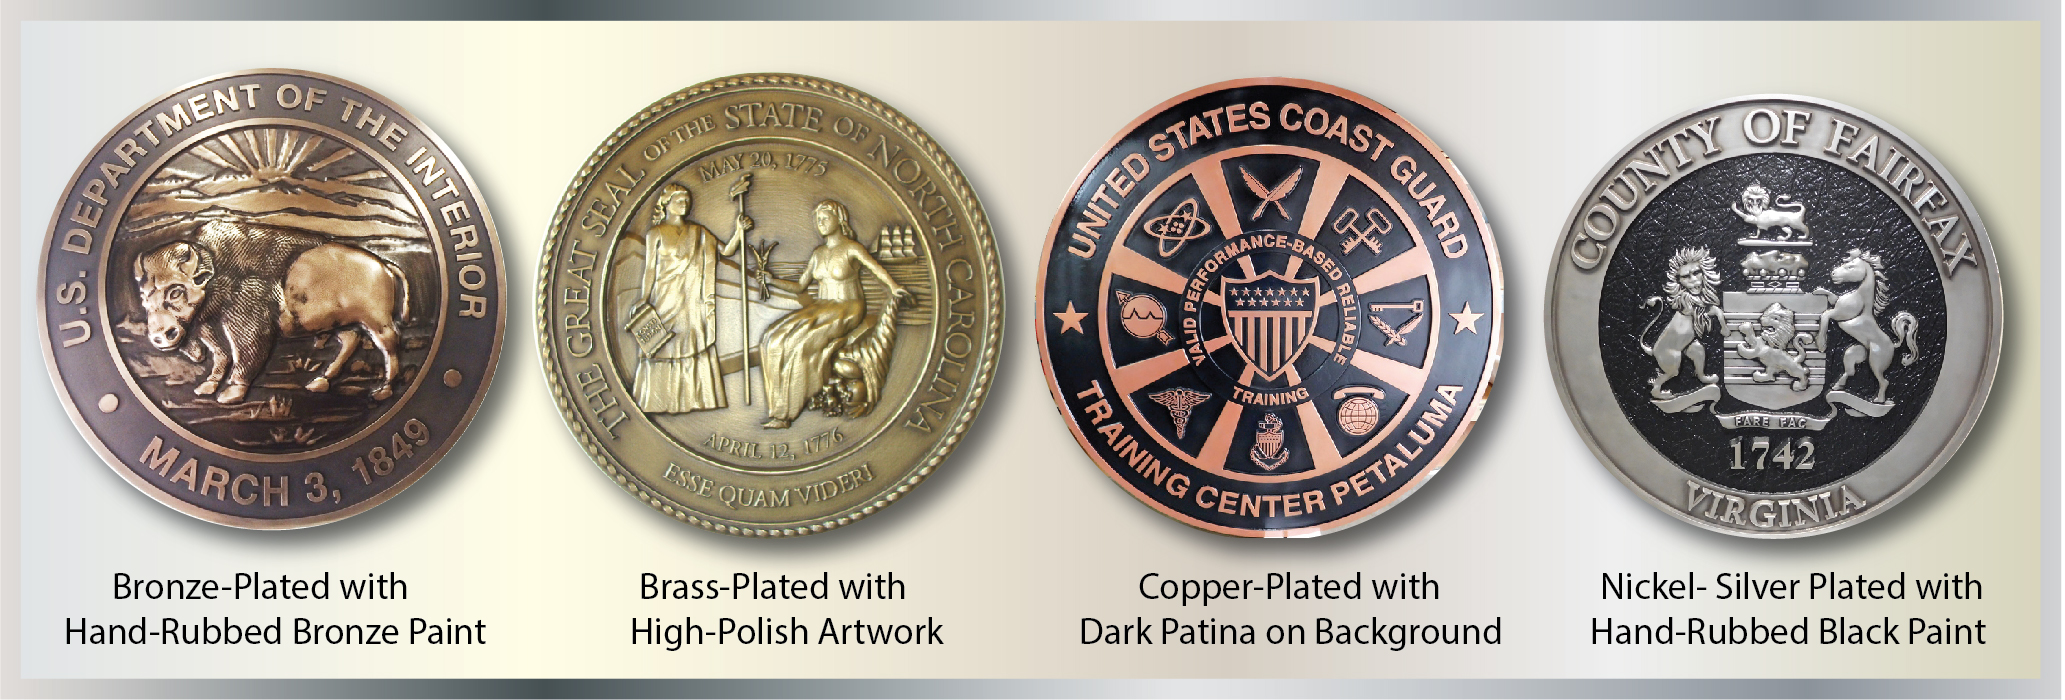 Copper Plating Cost